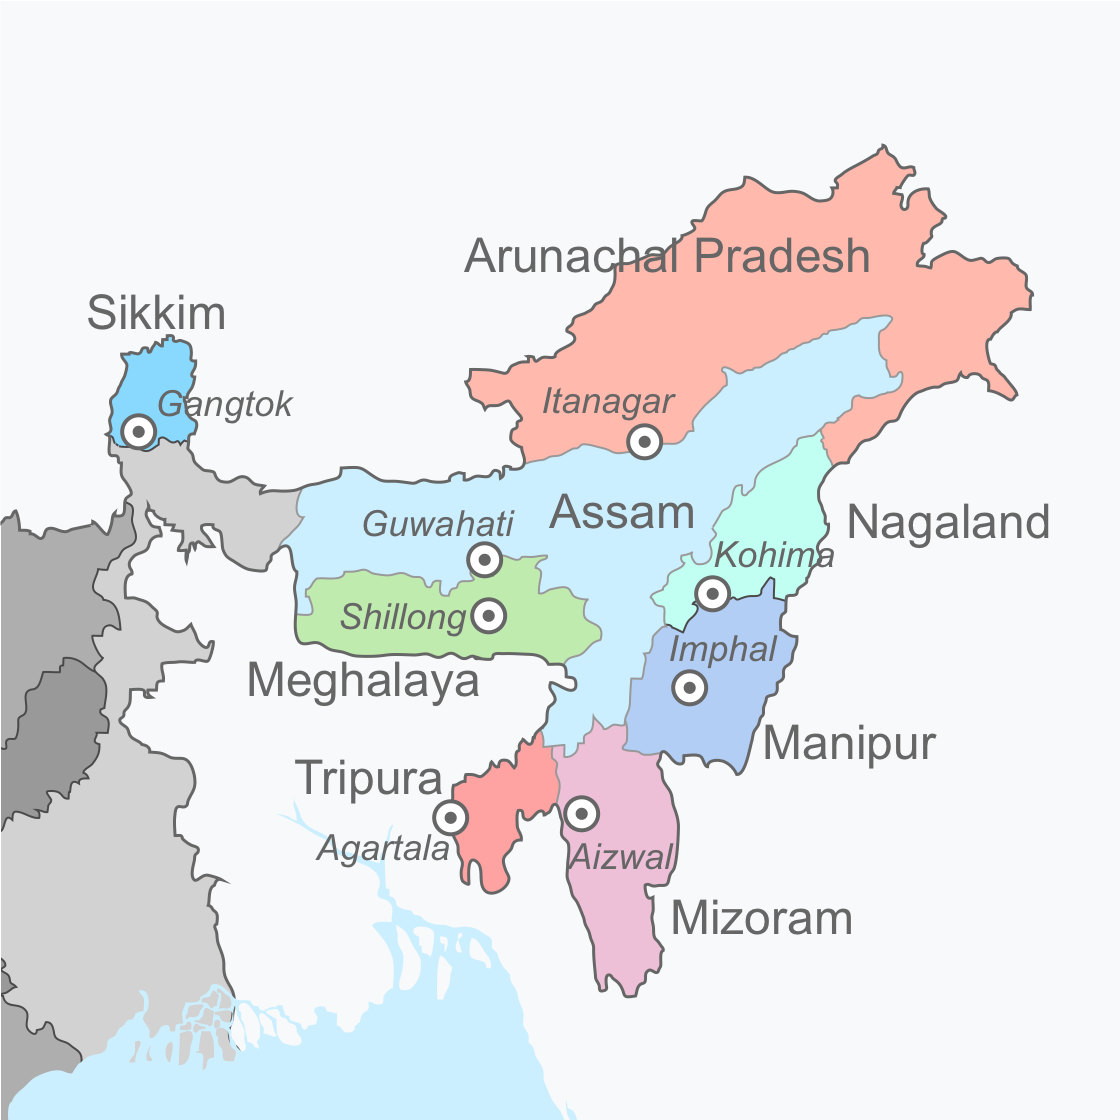 Northeast India - Wikipedia on north middle states and capitals, northeastern states map with capitals, northeast us map with capitals, northeast usa map with capitals, east region states and capitals, northeastern usa state and capitals, north east united states map, middle east states and capitals,